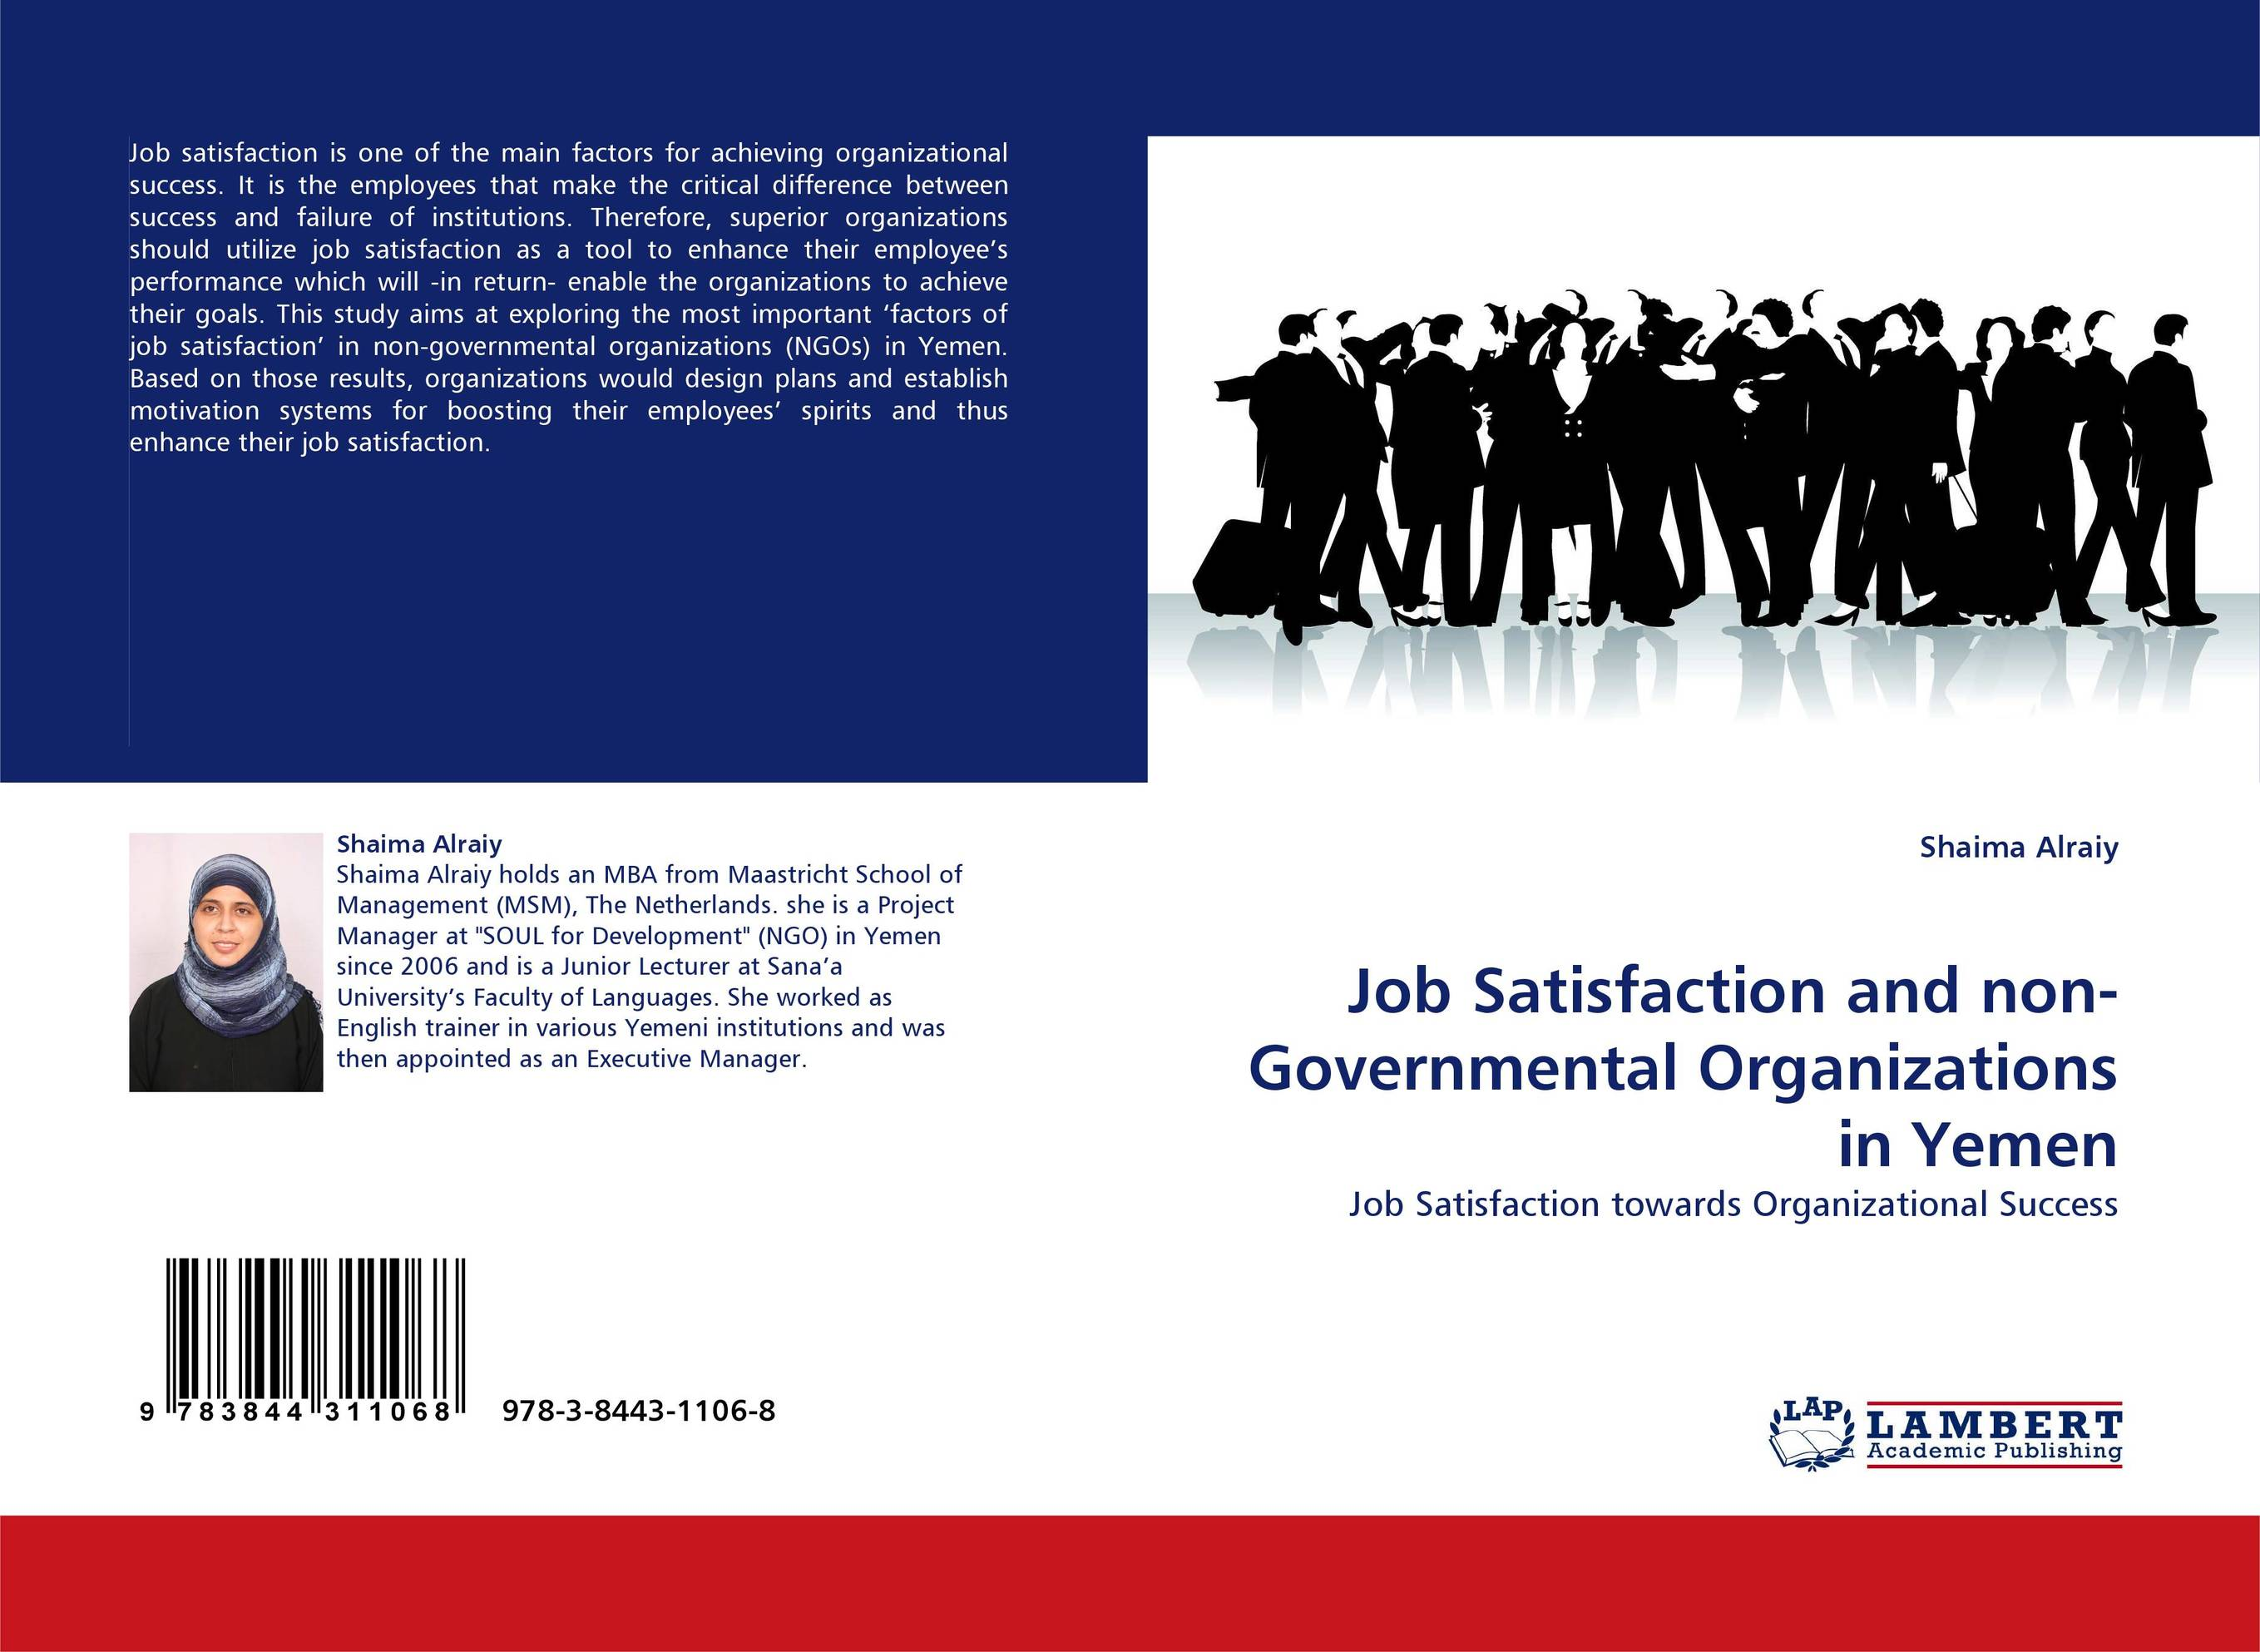 the difference between job satisfaction and organizational Lund believed that less research was done on the relationship between organizational culture and job satisfaction within the research topic of organizational culture and outcome the organization consists of the staff, with the behavior of its individual members affecting outcomes.